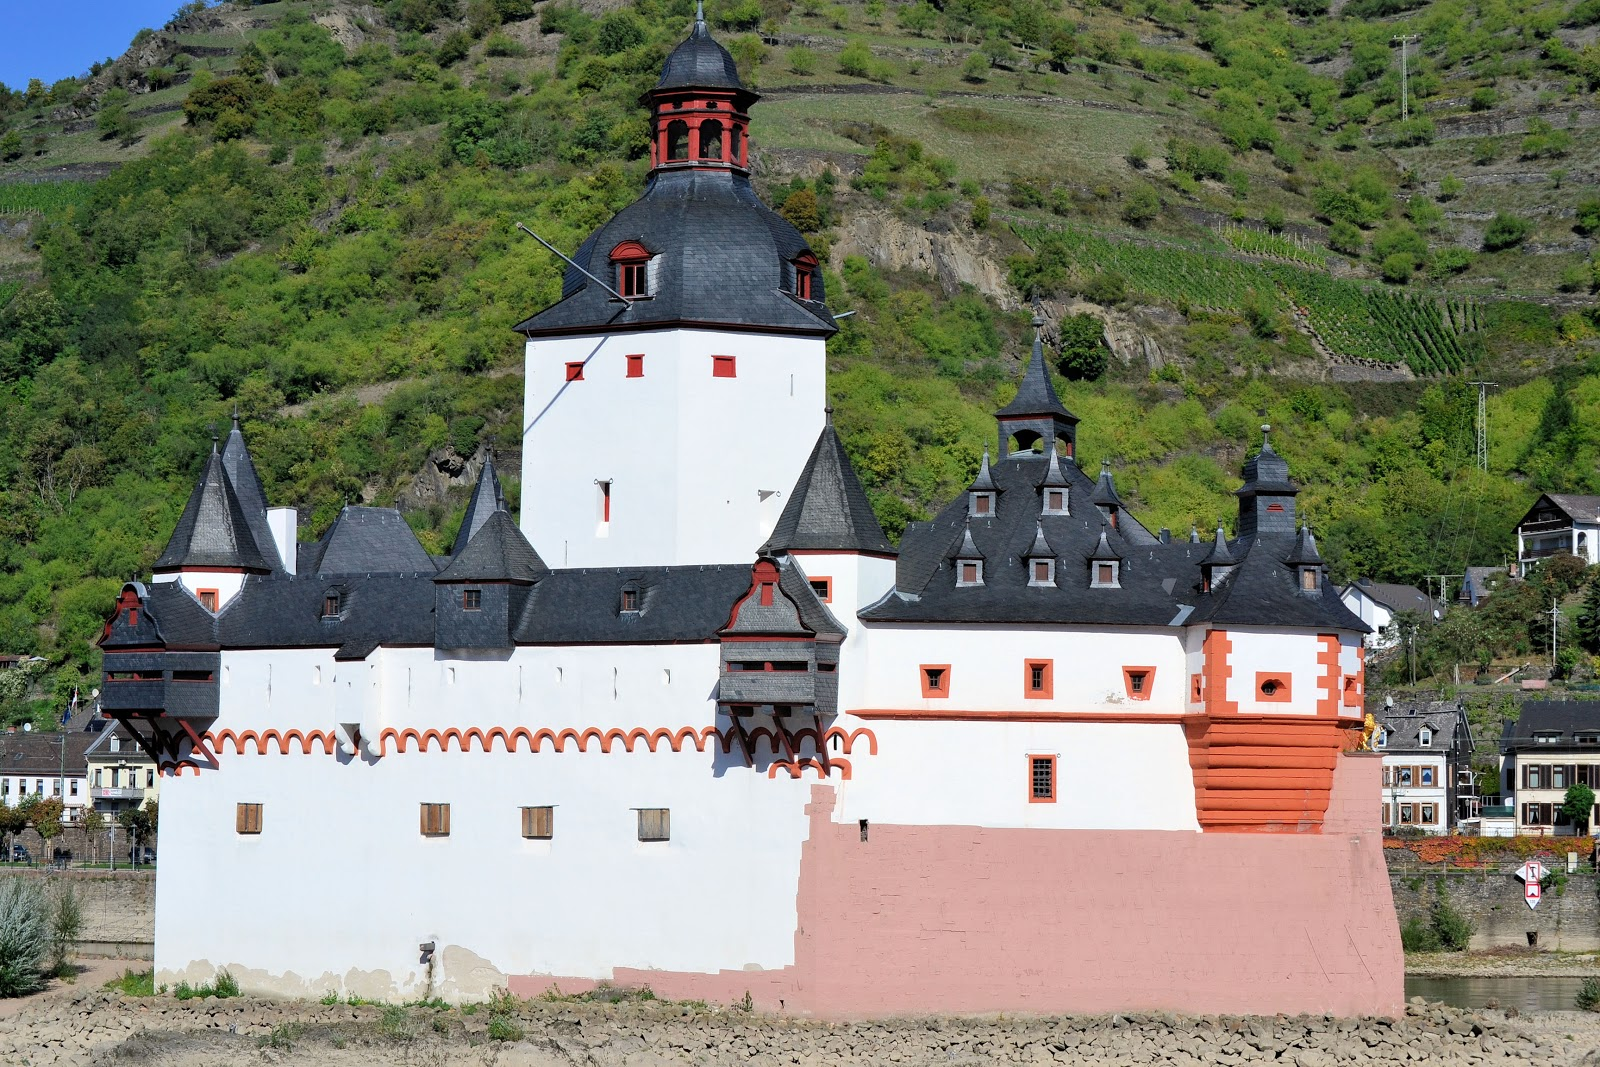 Close-up view of Pfalzgrafenstein Castle.